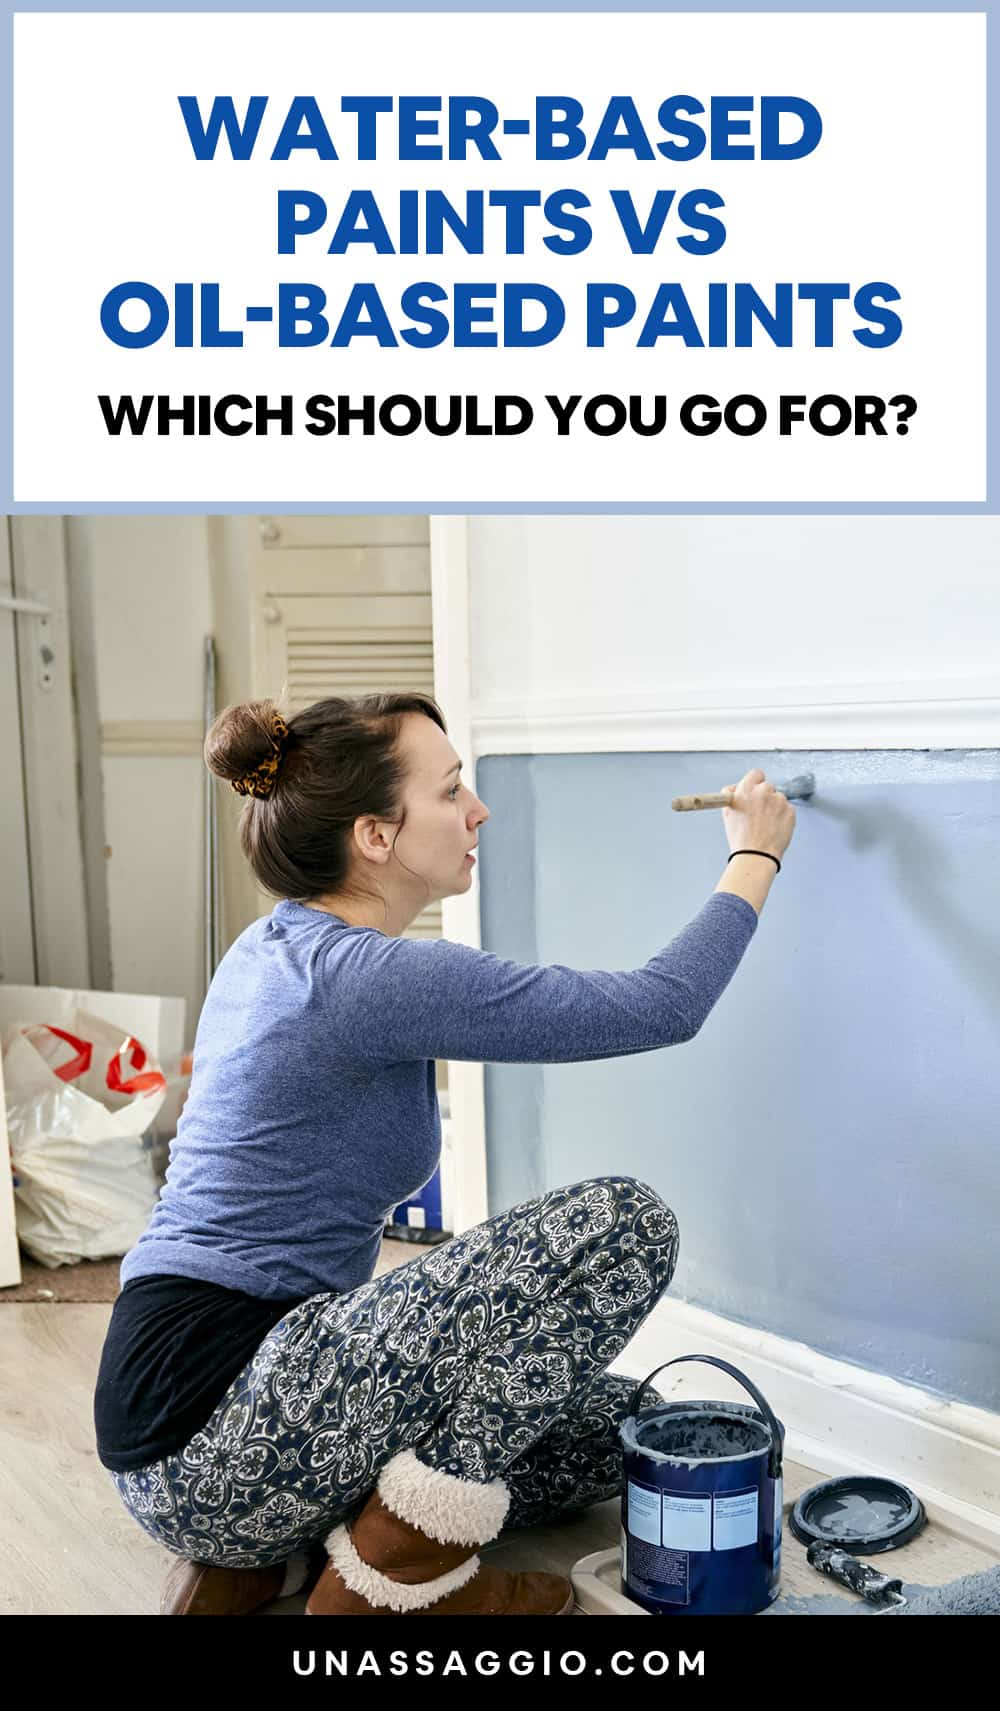 Water-Based Paints vs Oil-Based Paints: Which One Should You Go For?